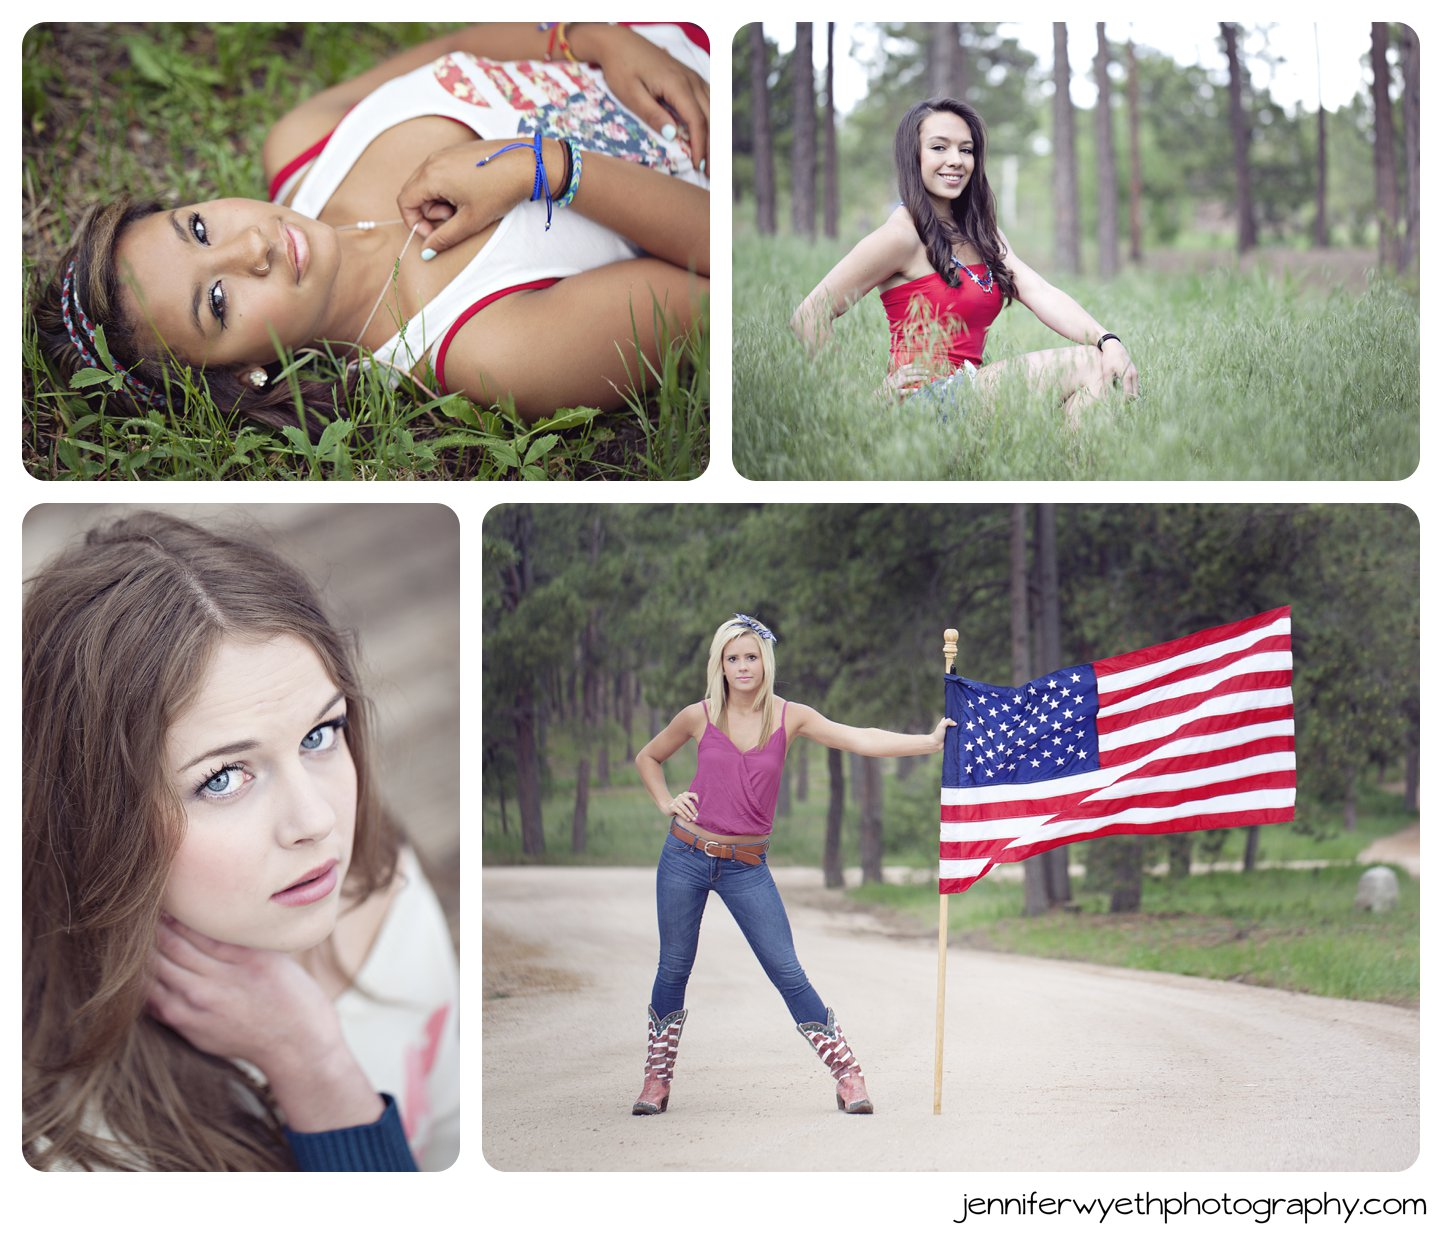 four girls pose in Americana clothing using USA flag as accessory